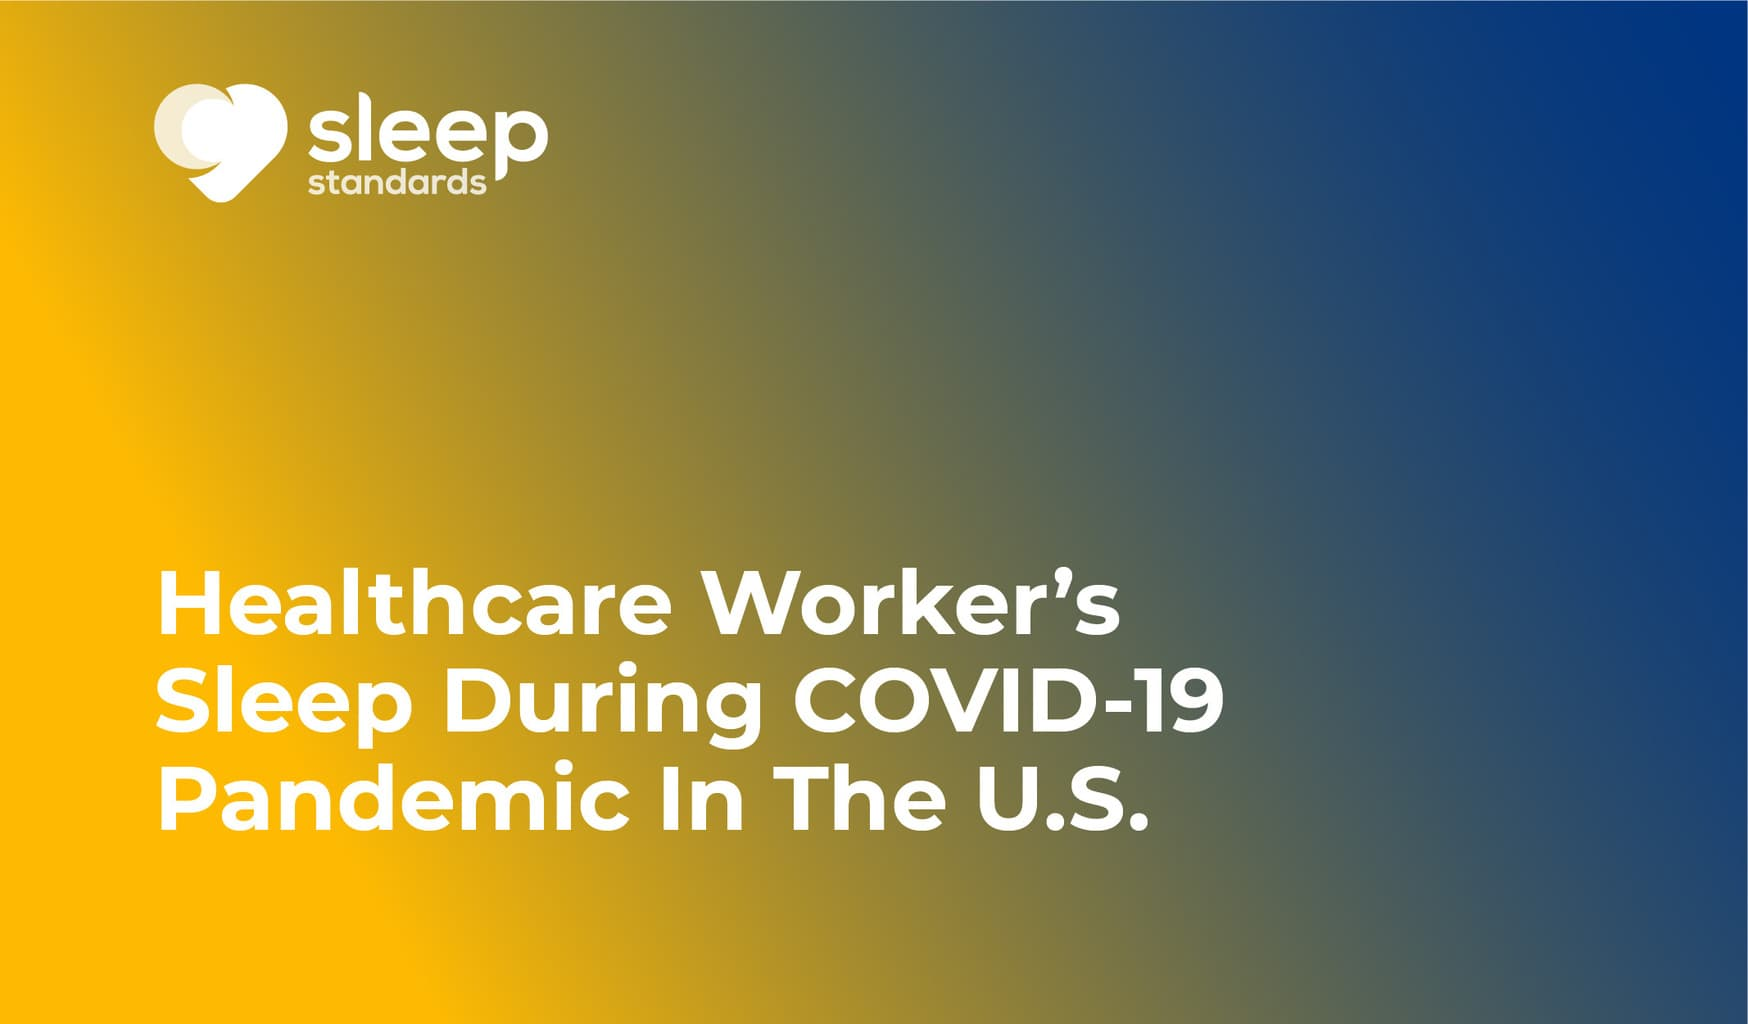 Healthcare Worker's Sleep During COVID-19 Pandemic In The U.S-01